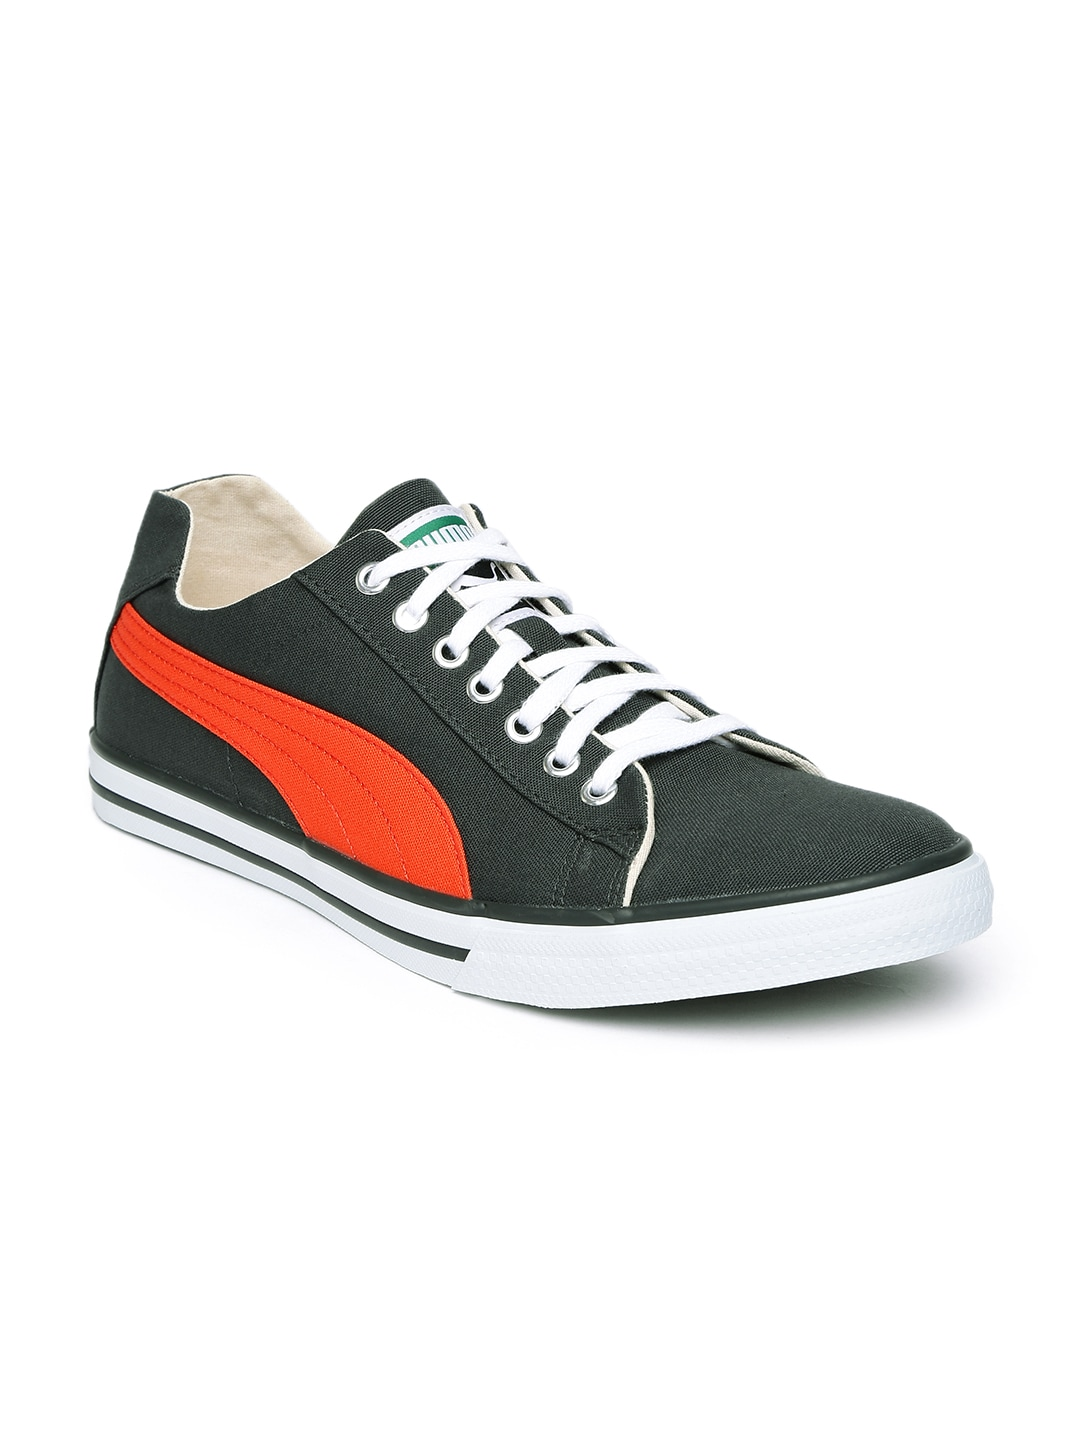 Hip Hop Shoes For Men - Buy Hip Hop Shoes For Men online in India a27a69861